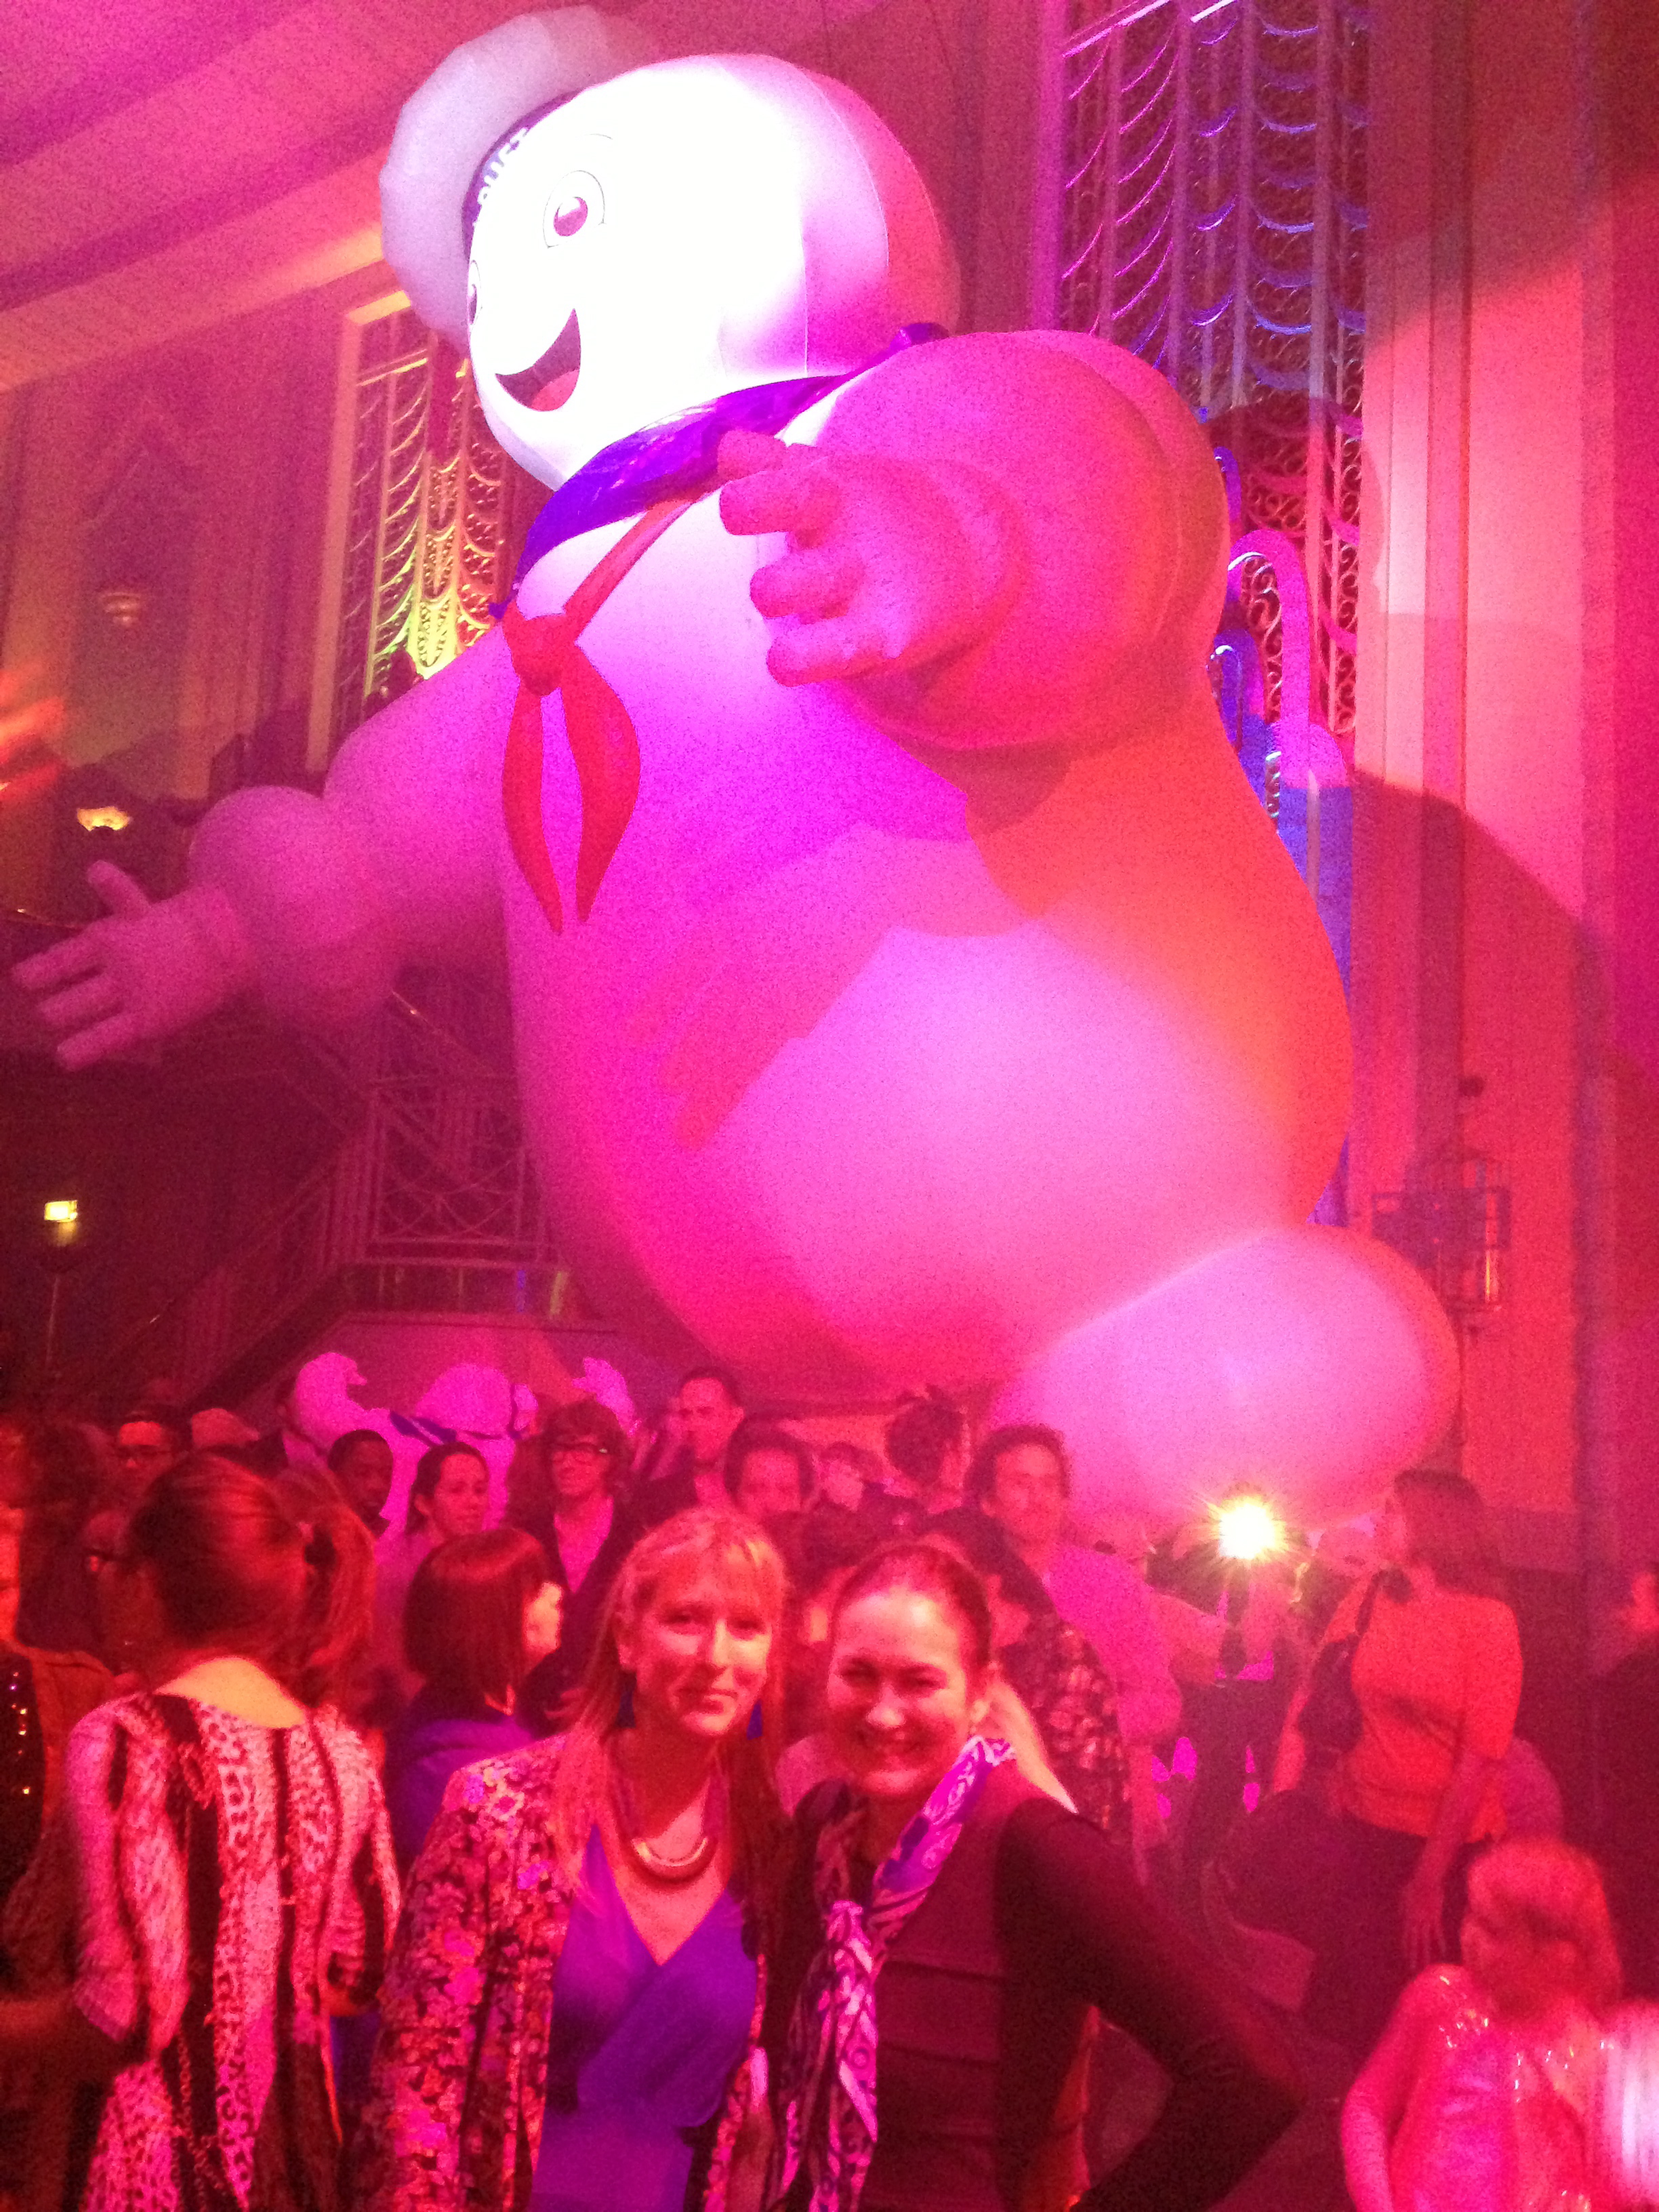 Photo from the event - yes, Stay Puft Man appeared - both on the screen and in the Troxy - fabulous!